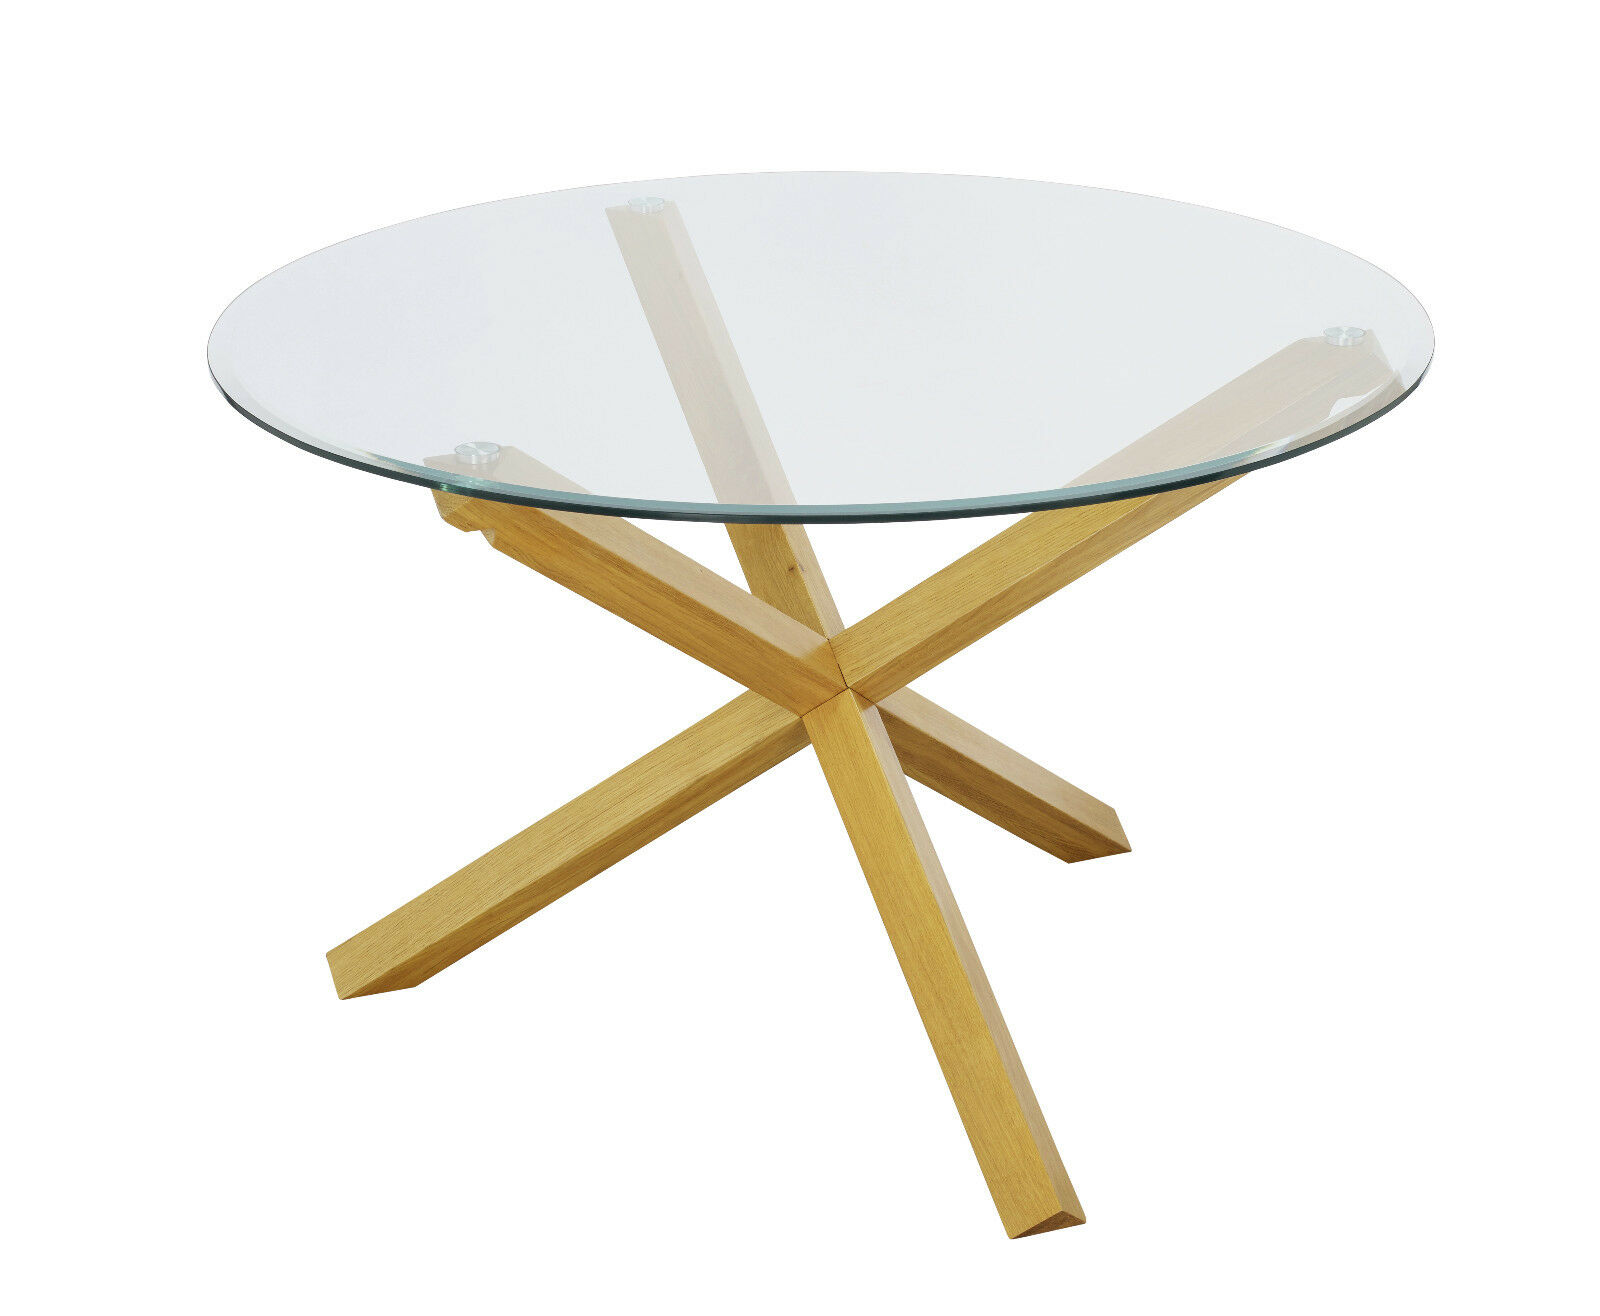 Trend Solid Oak Large Round Glass Top Dining Table 120cm